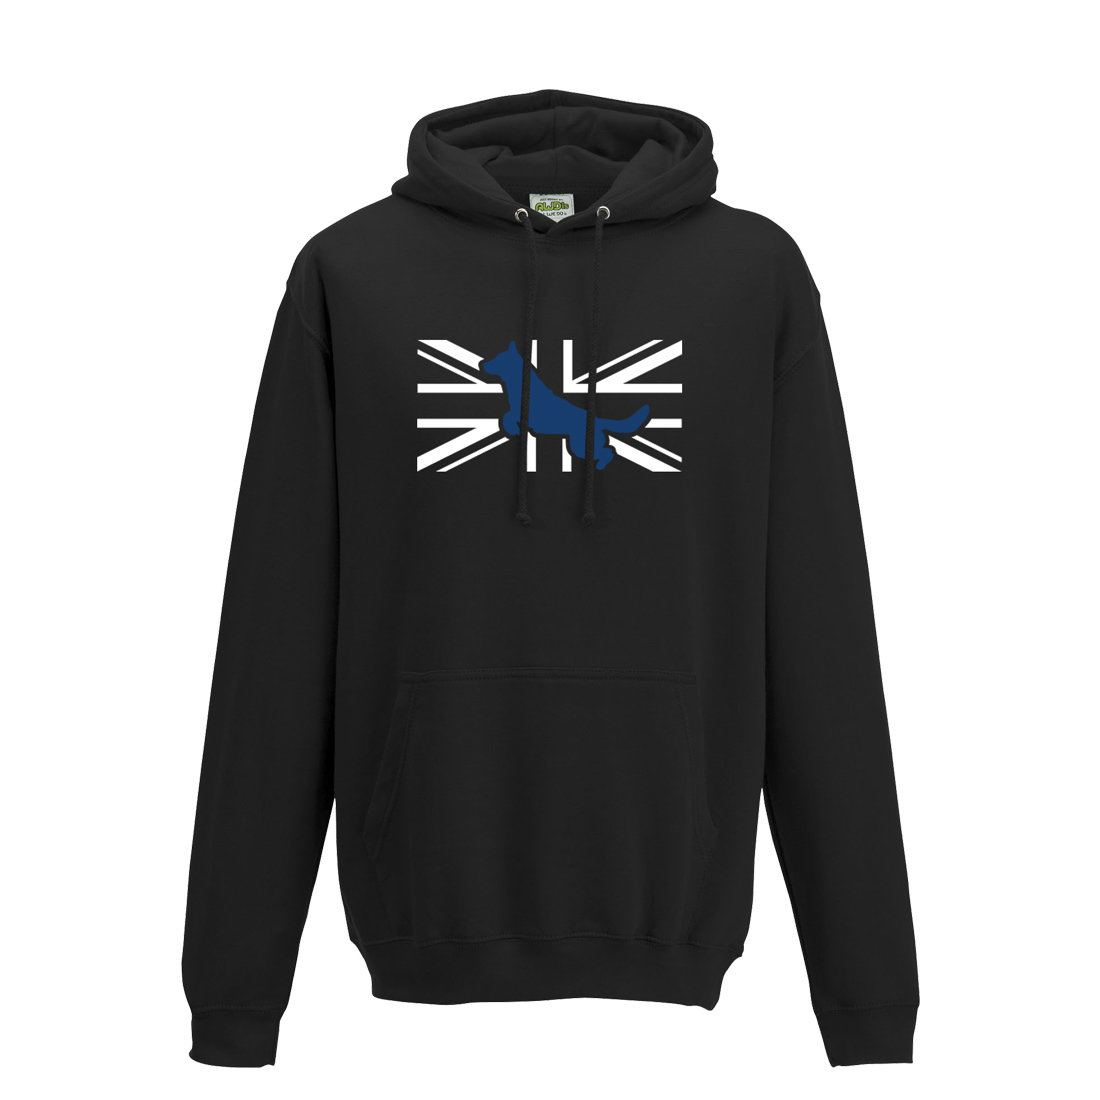 Unisex 'Flag LandShark' Hooded Top